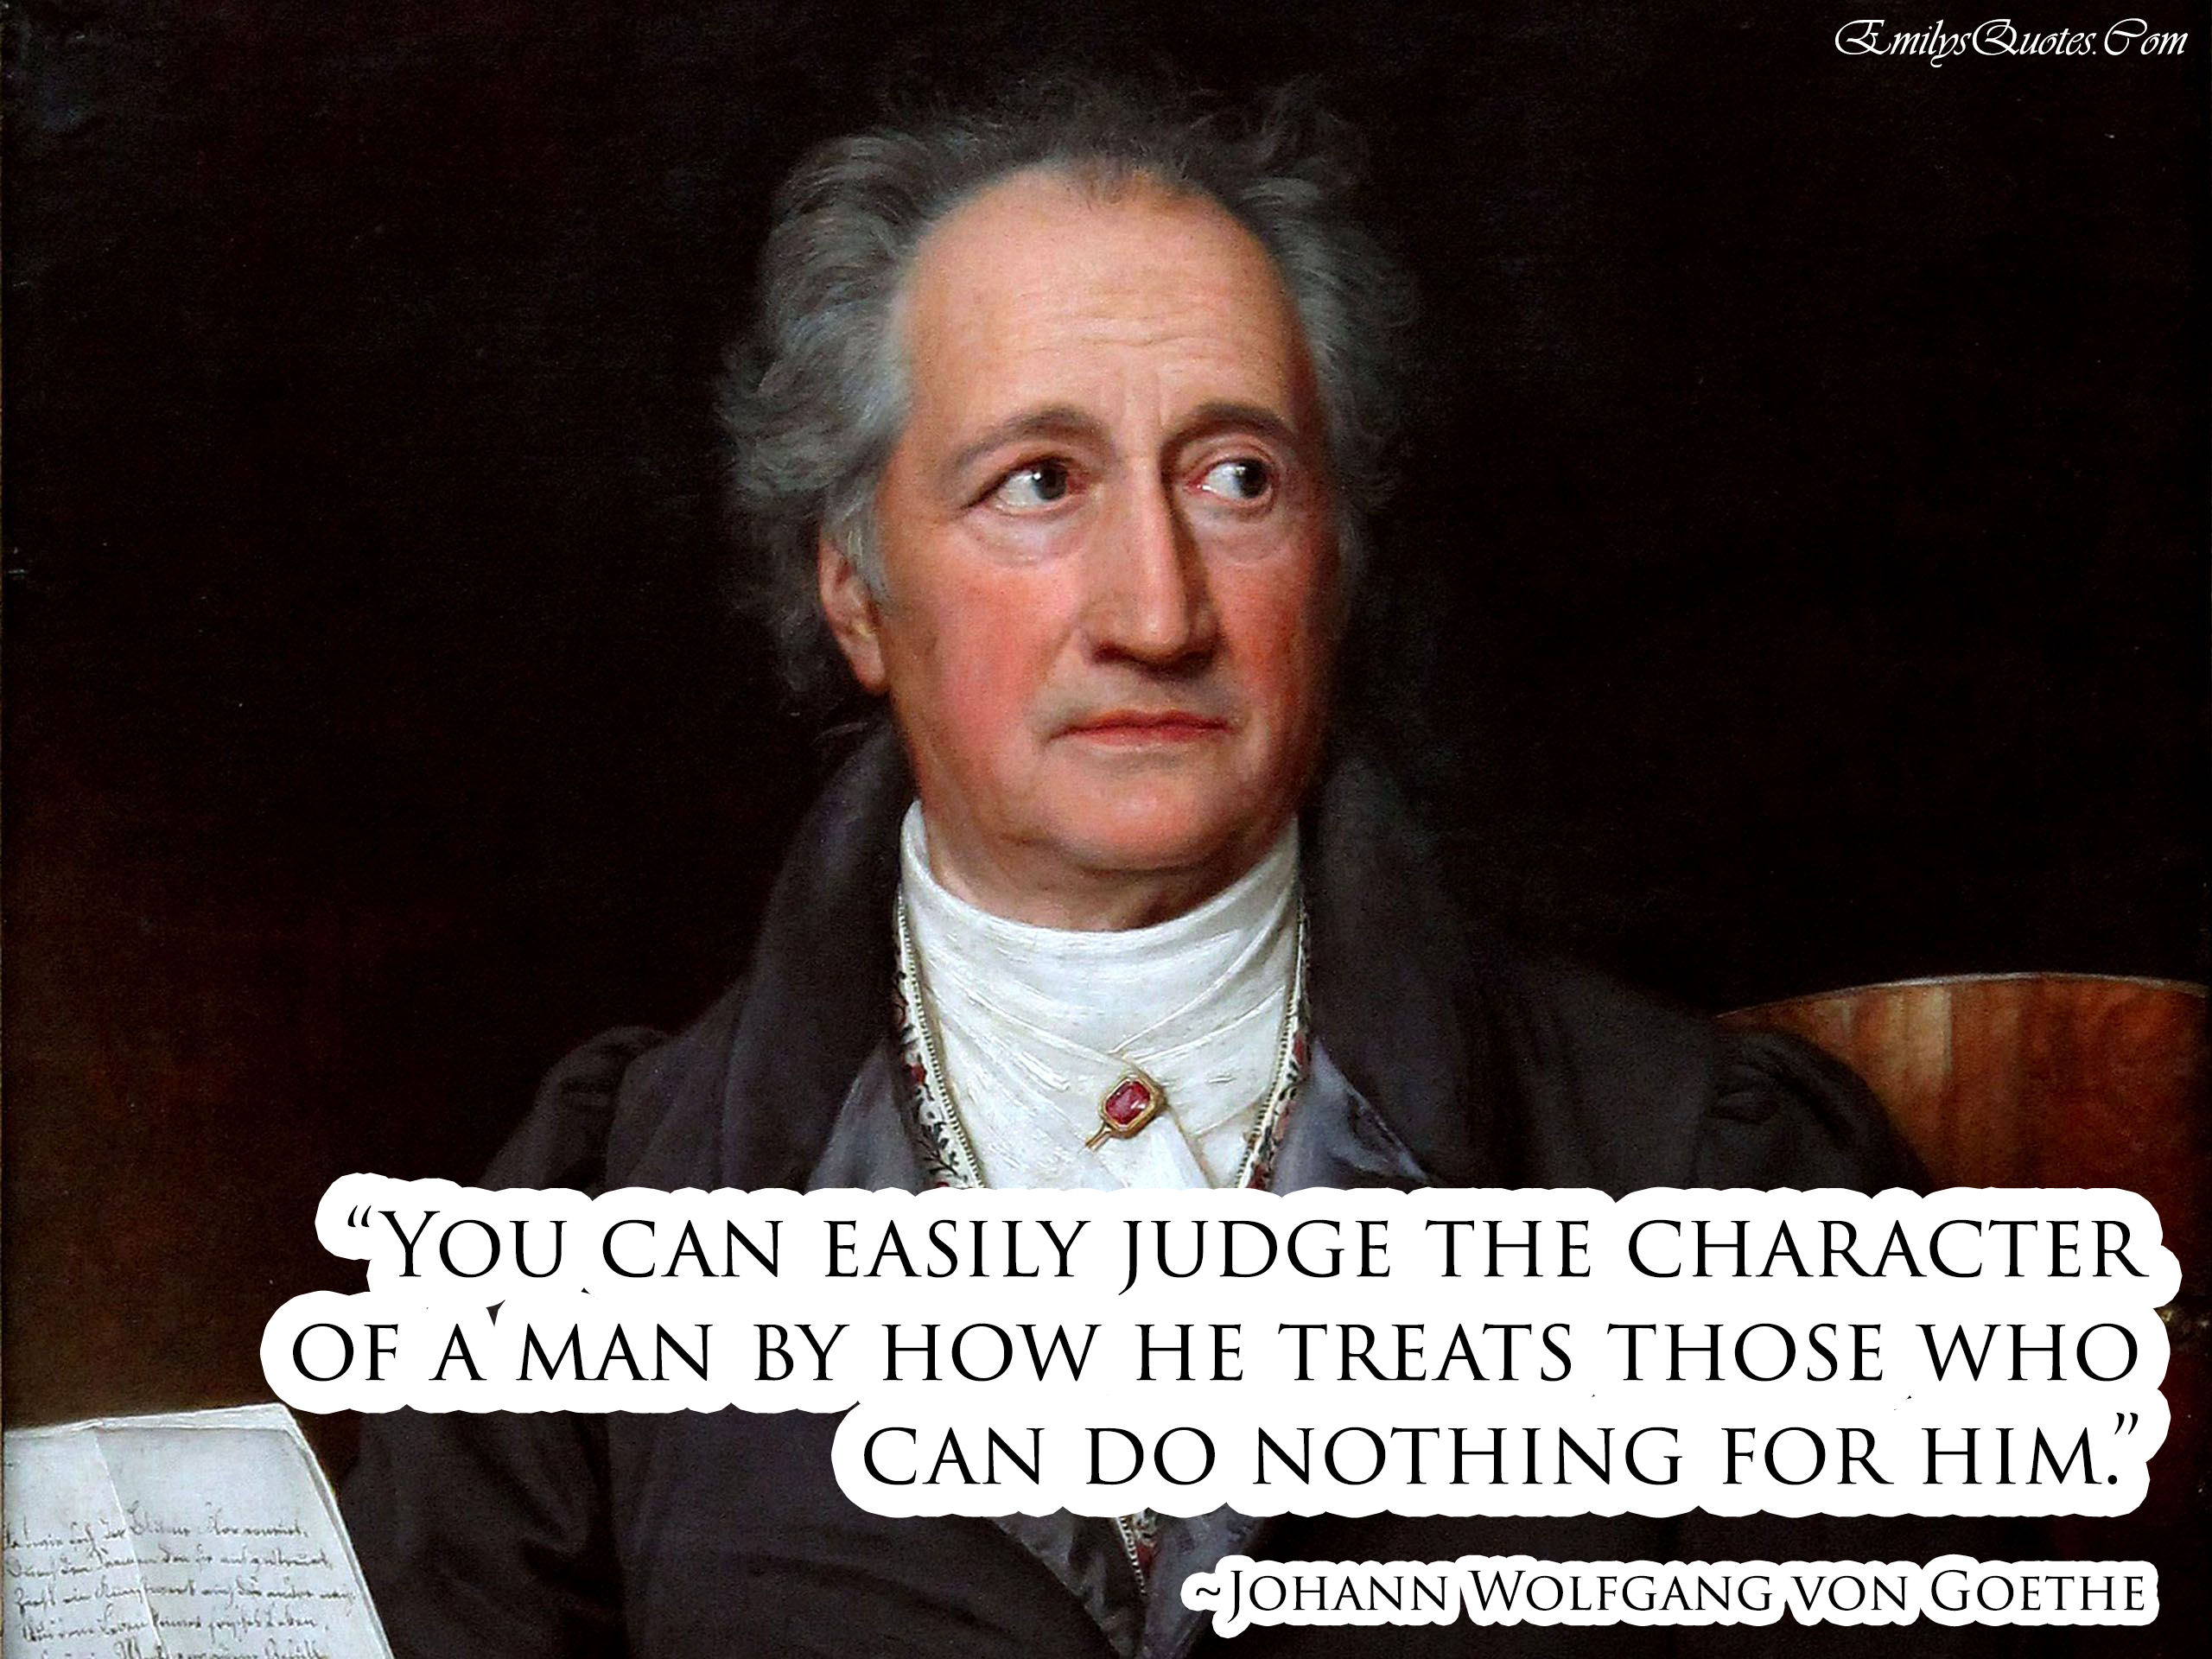 a biography of johann wolfgang von goethe Goethe lived through tumultuous times in politics and, consequently, in censorship he had seen the coronation of joseph ii in 1764, deplored the french revolution from afar in 1789, witnessed the .